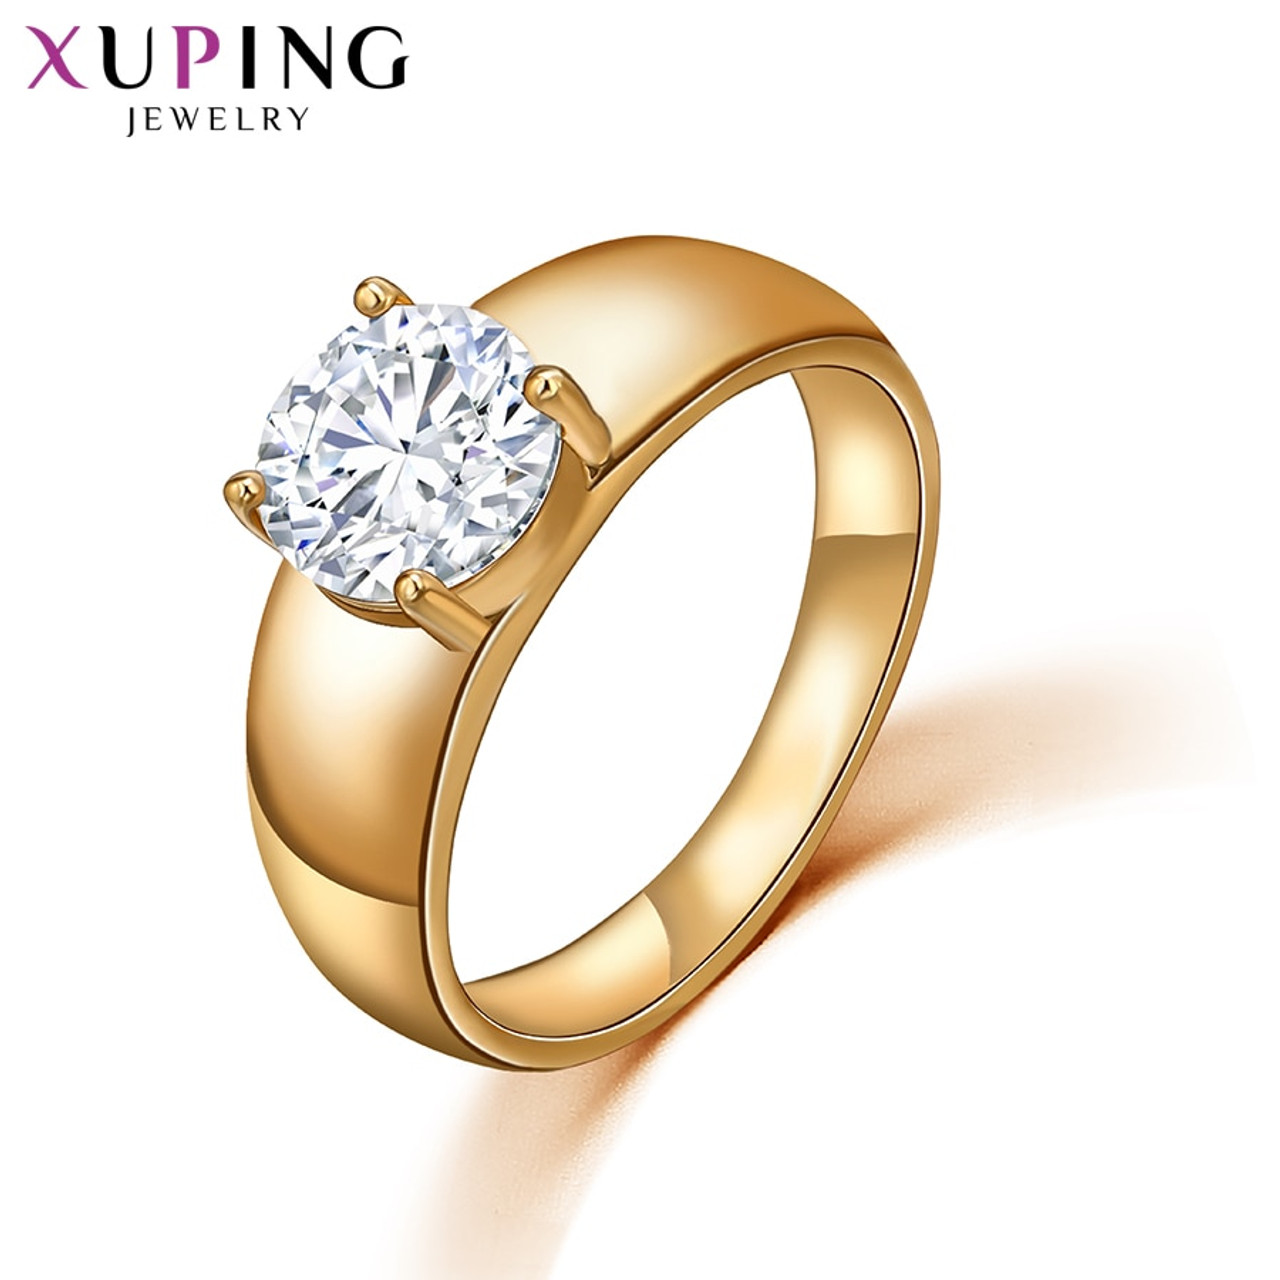 1d3c25686 Xuping Christmas Luxury Ring Popular Design Charm Style Girl Women Gold  Color Plated Jewelry Valentine's Day Gift 10534 - OnshopDeals.Com